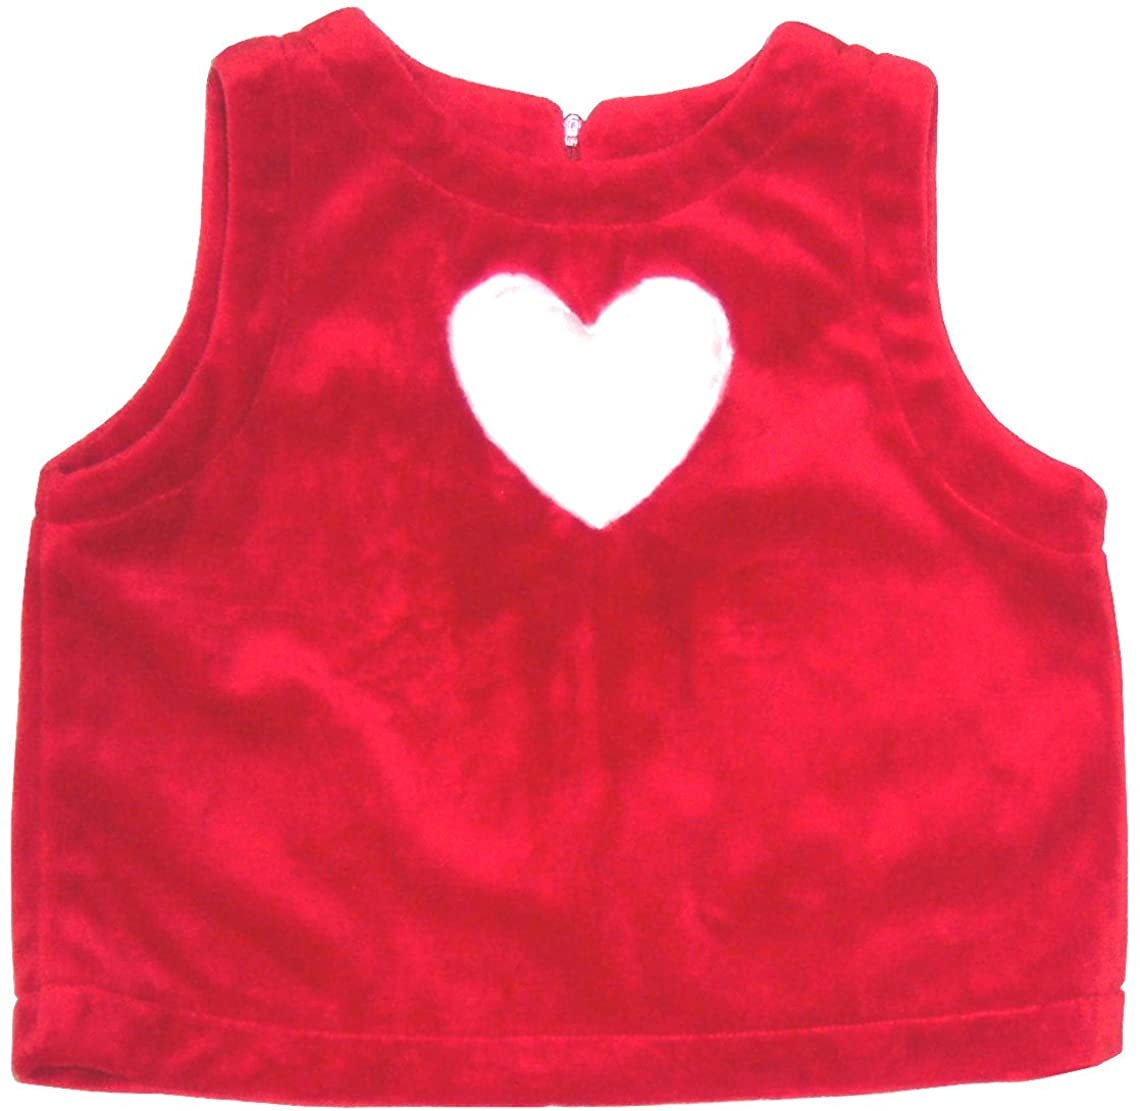 Abeille Girls Red Faux Cashmere Top with White Faux Fur Heart Size:3T